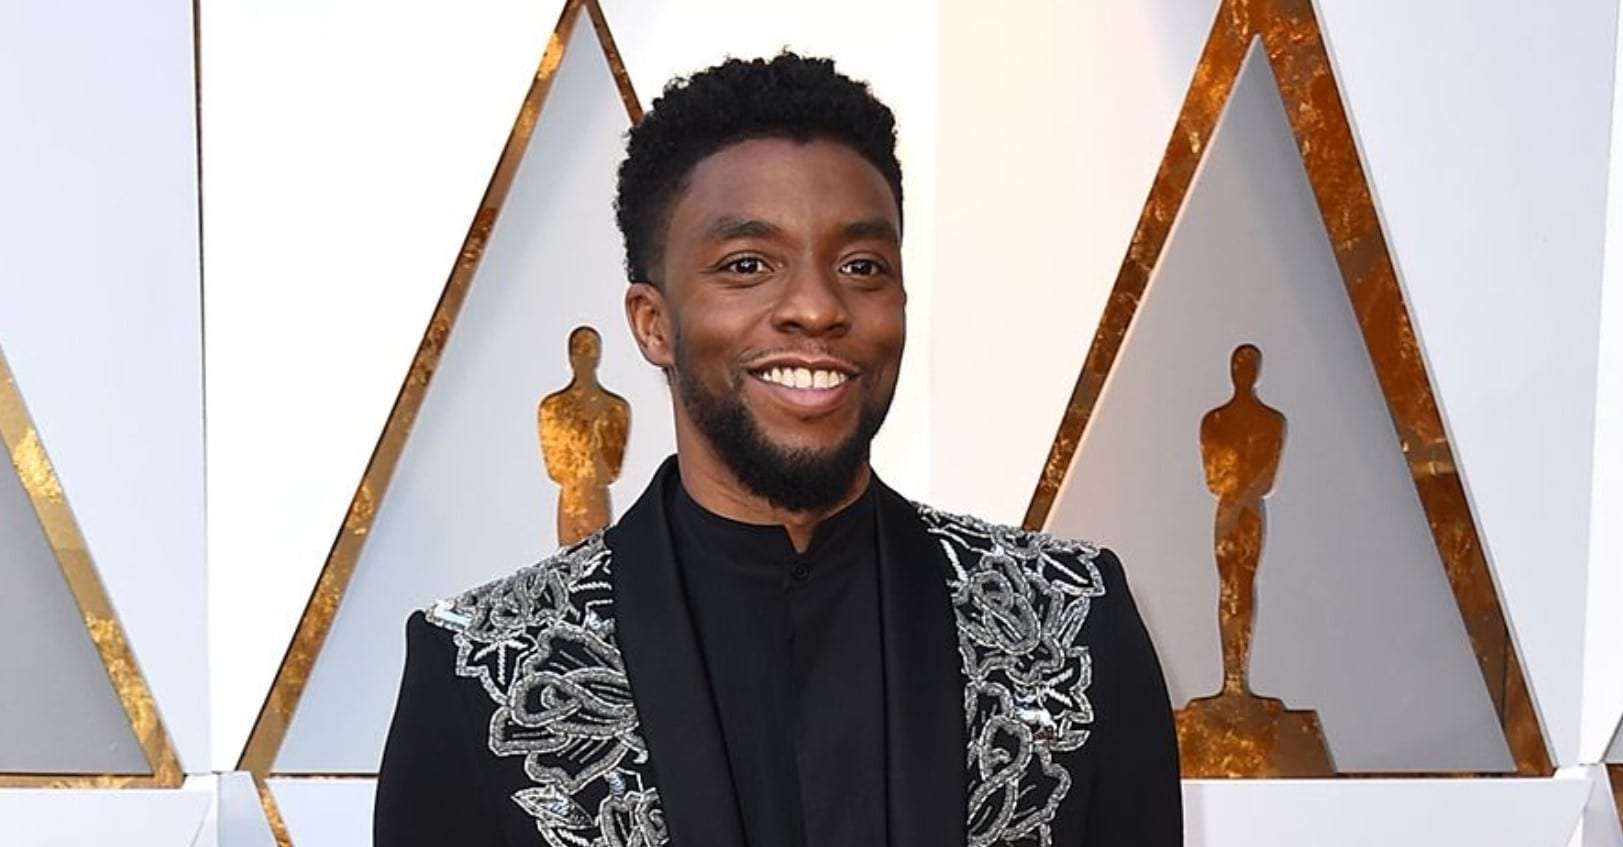 Black Panther actor Chadwick Boseman dies at 43 after 4-year fight with colon cancer